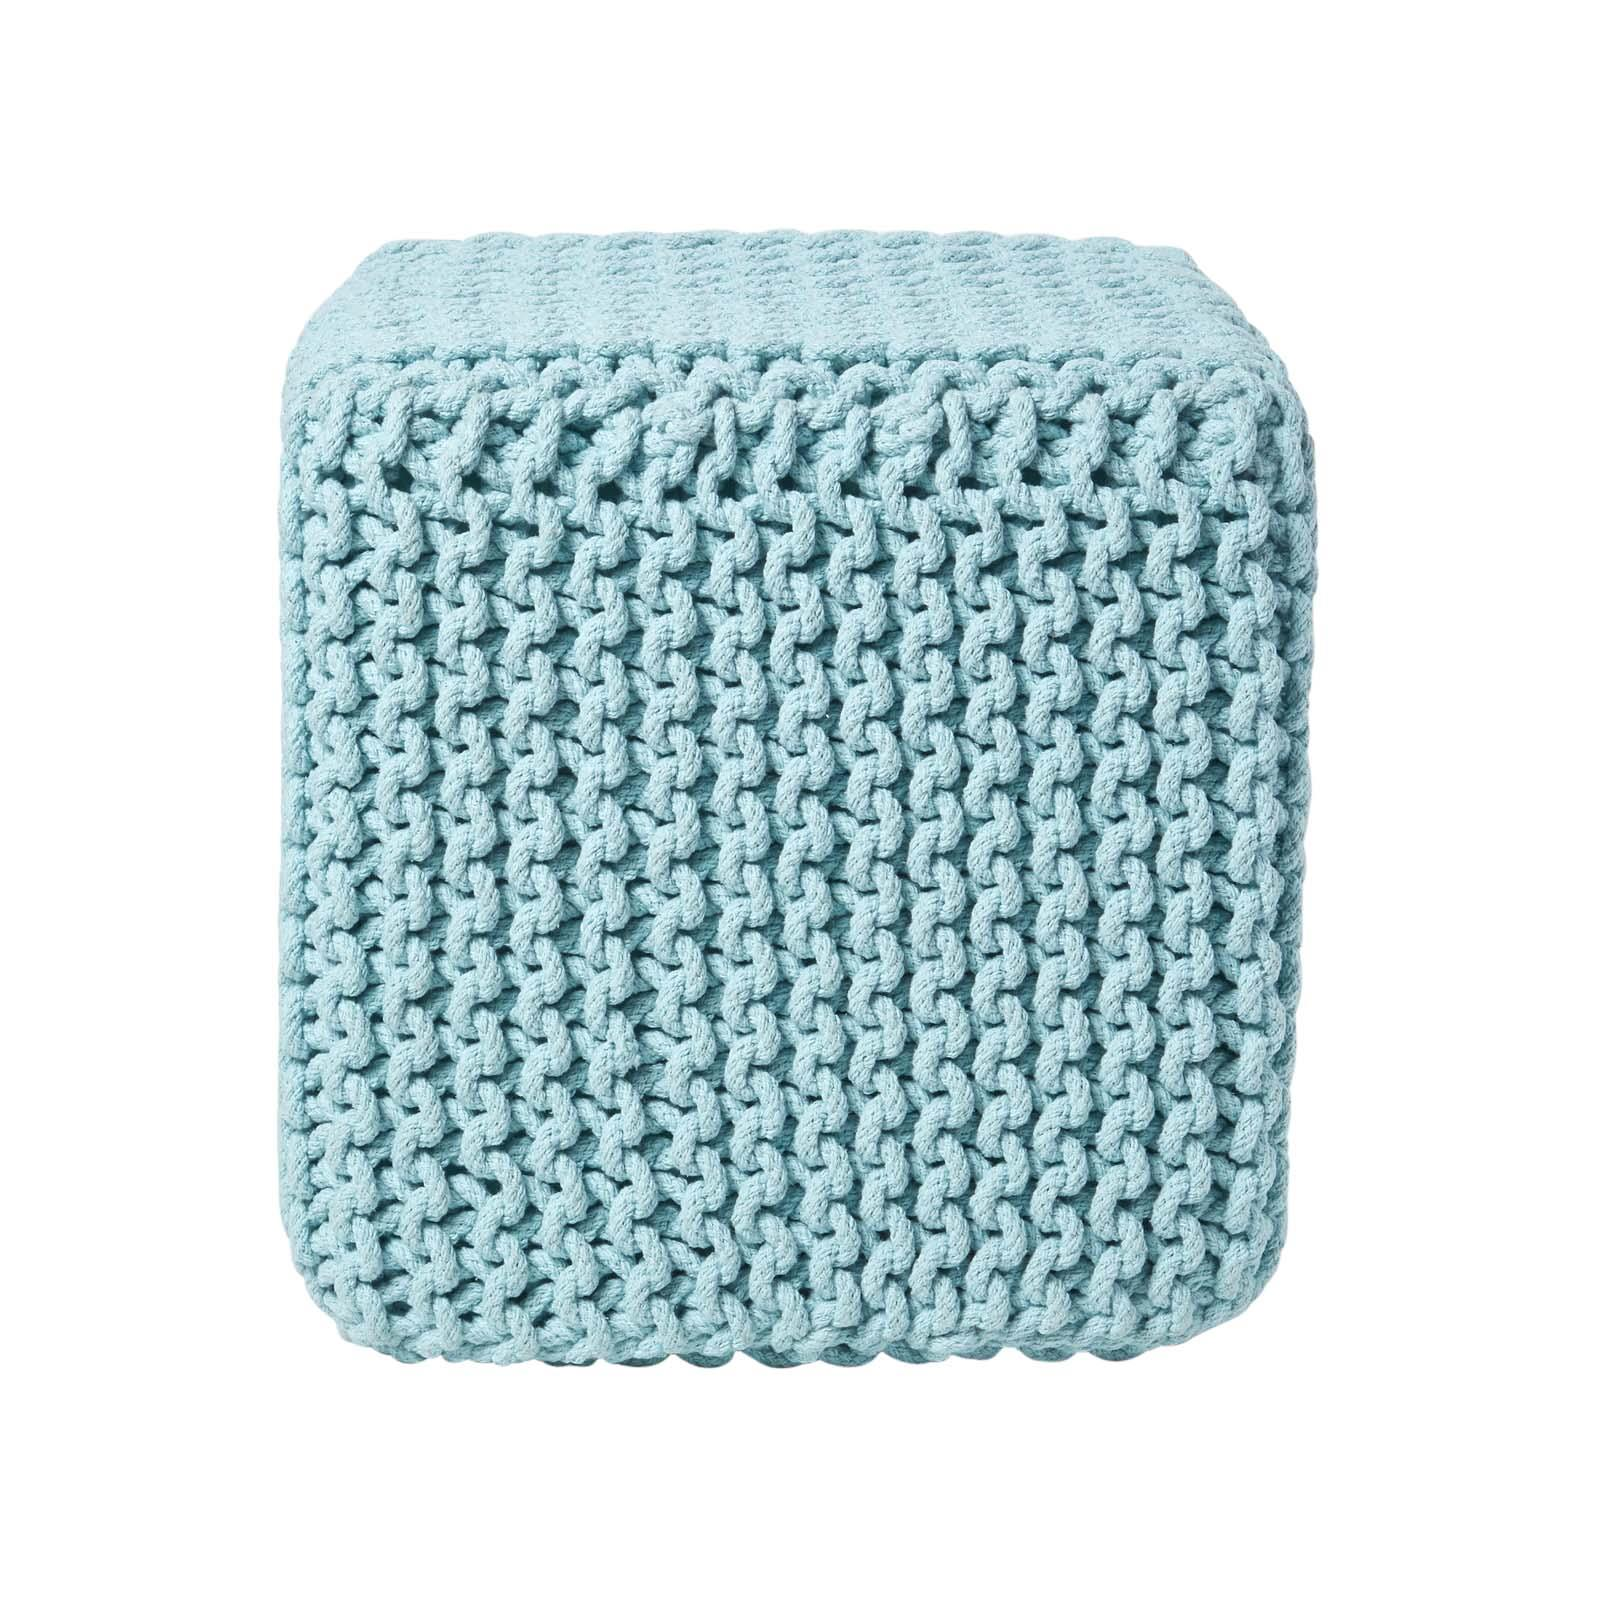 Hand-Knitted-100-Cotton-Pouffes-Round-Sphere-Or-Cube-Square-Chunky-Footstools thumbnail 128